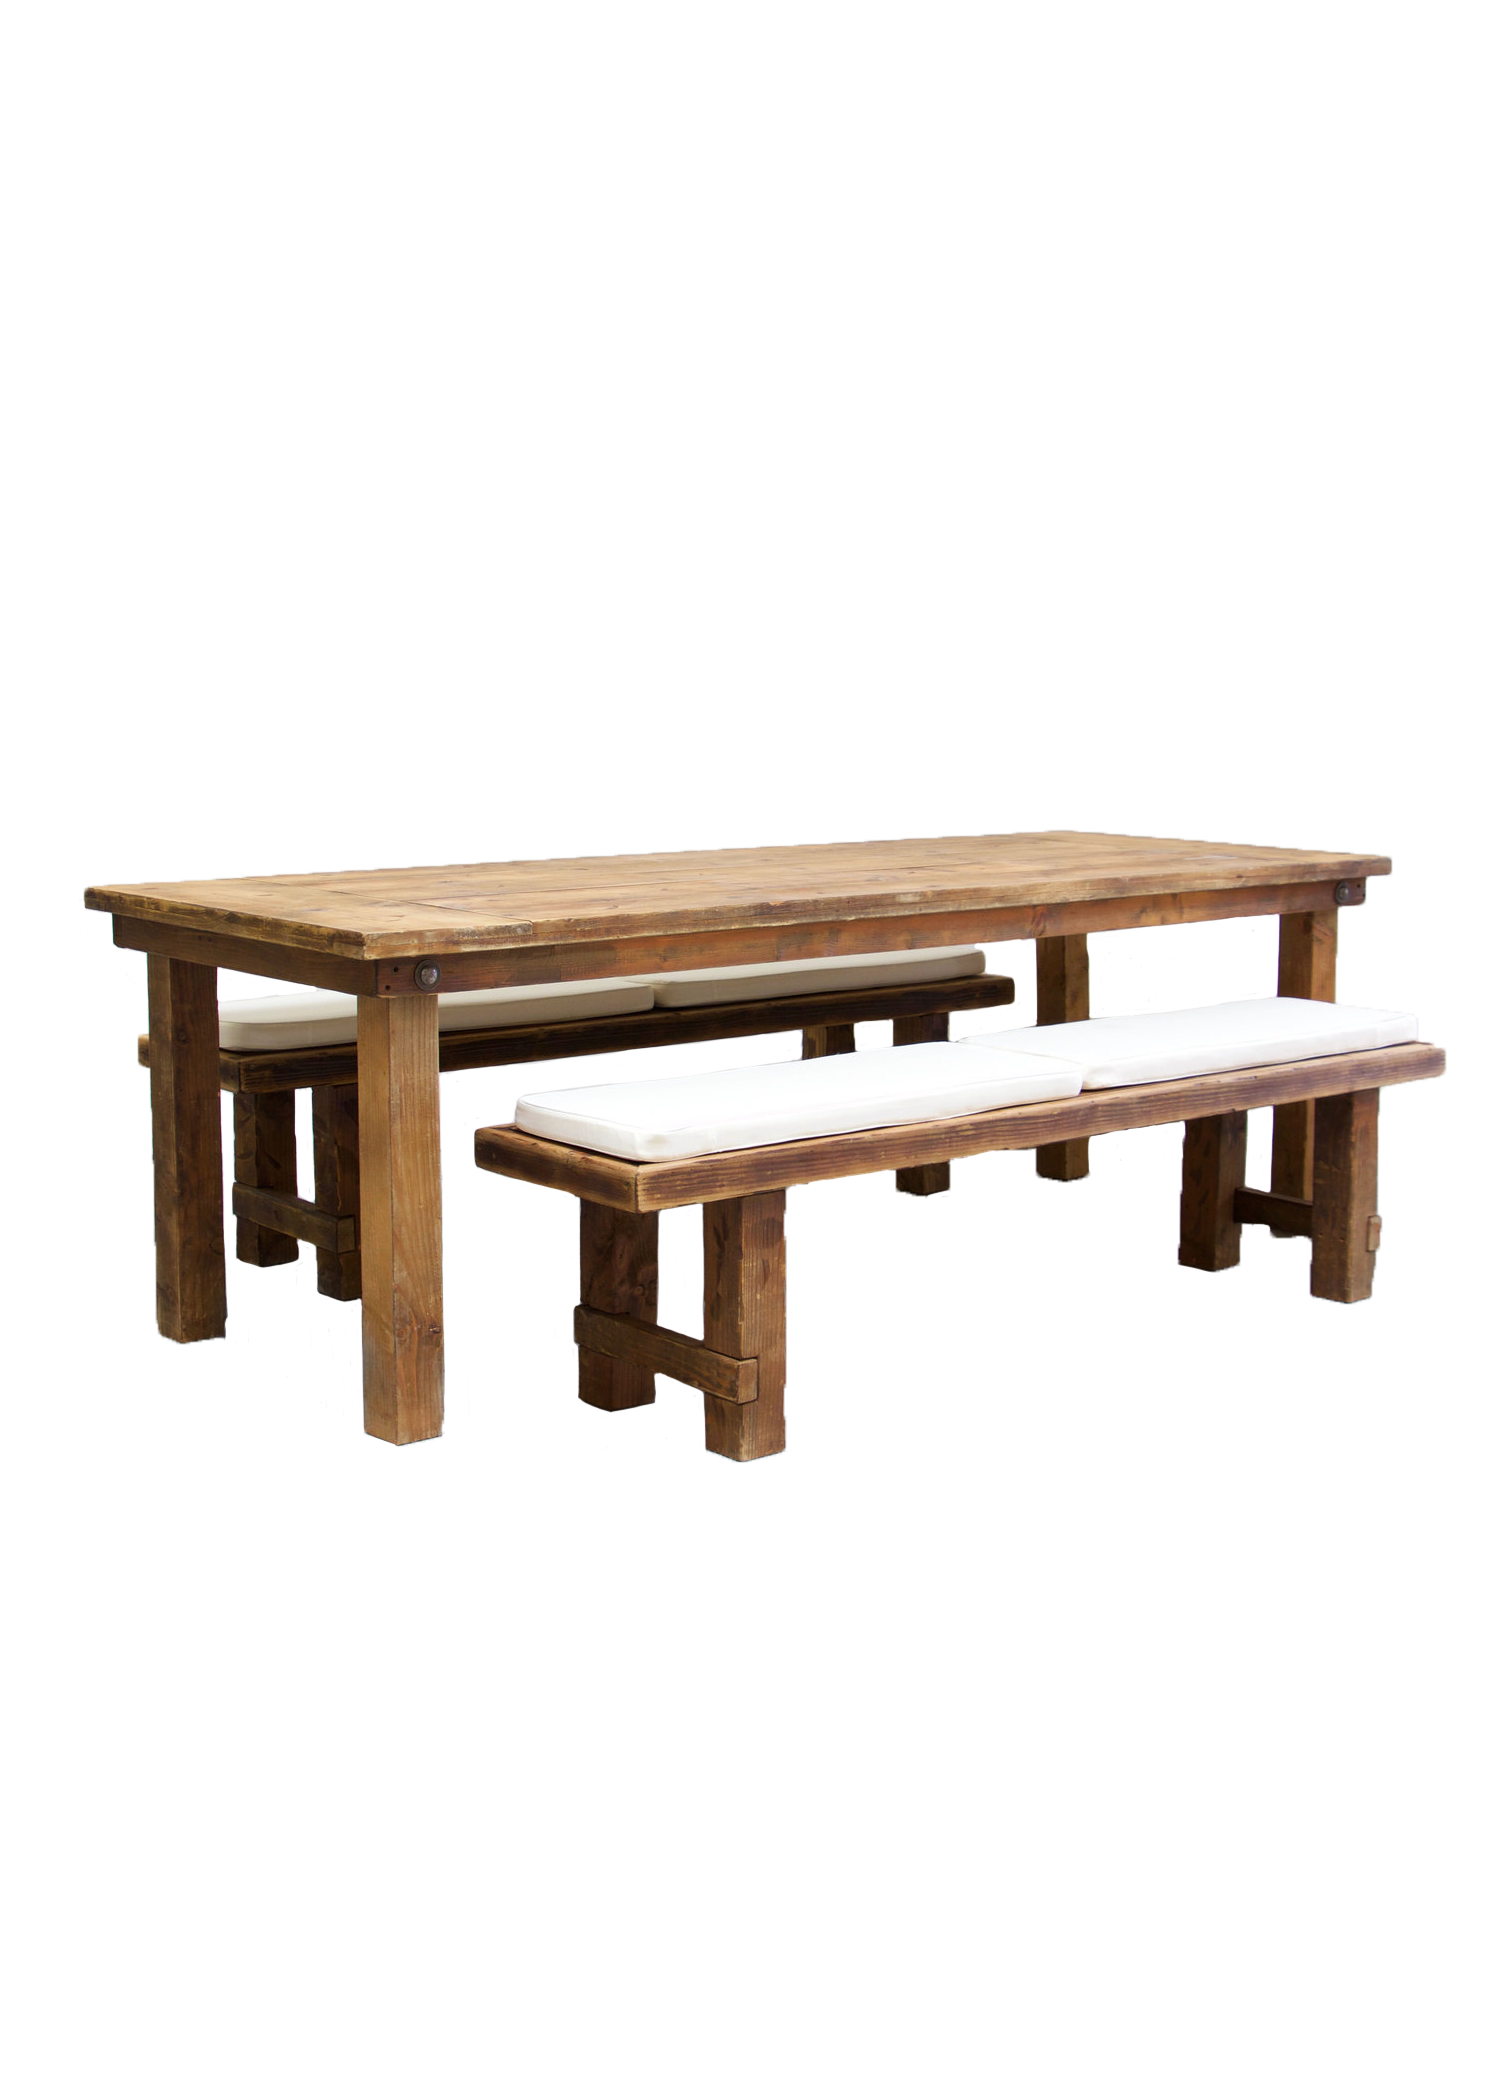 Honey Brown Farm Table with 2 Long Benches $145